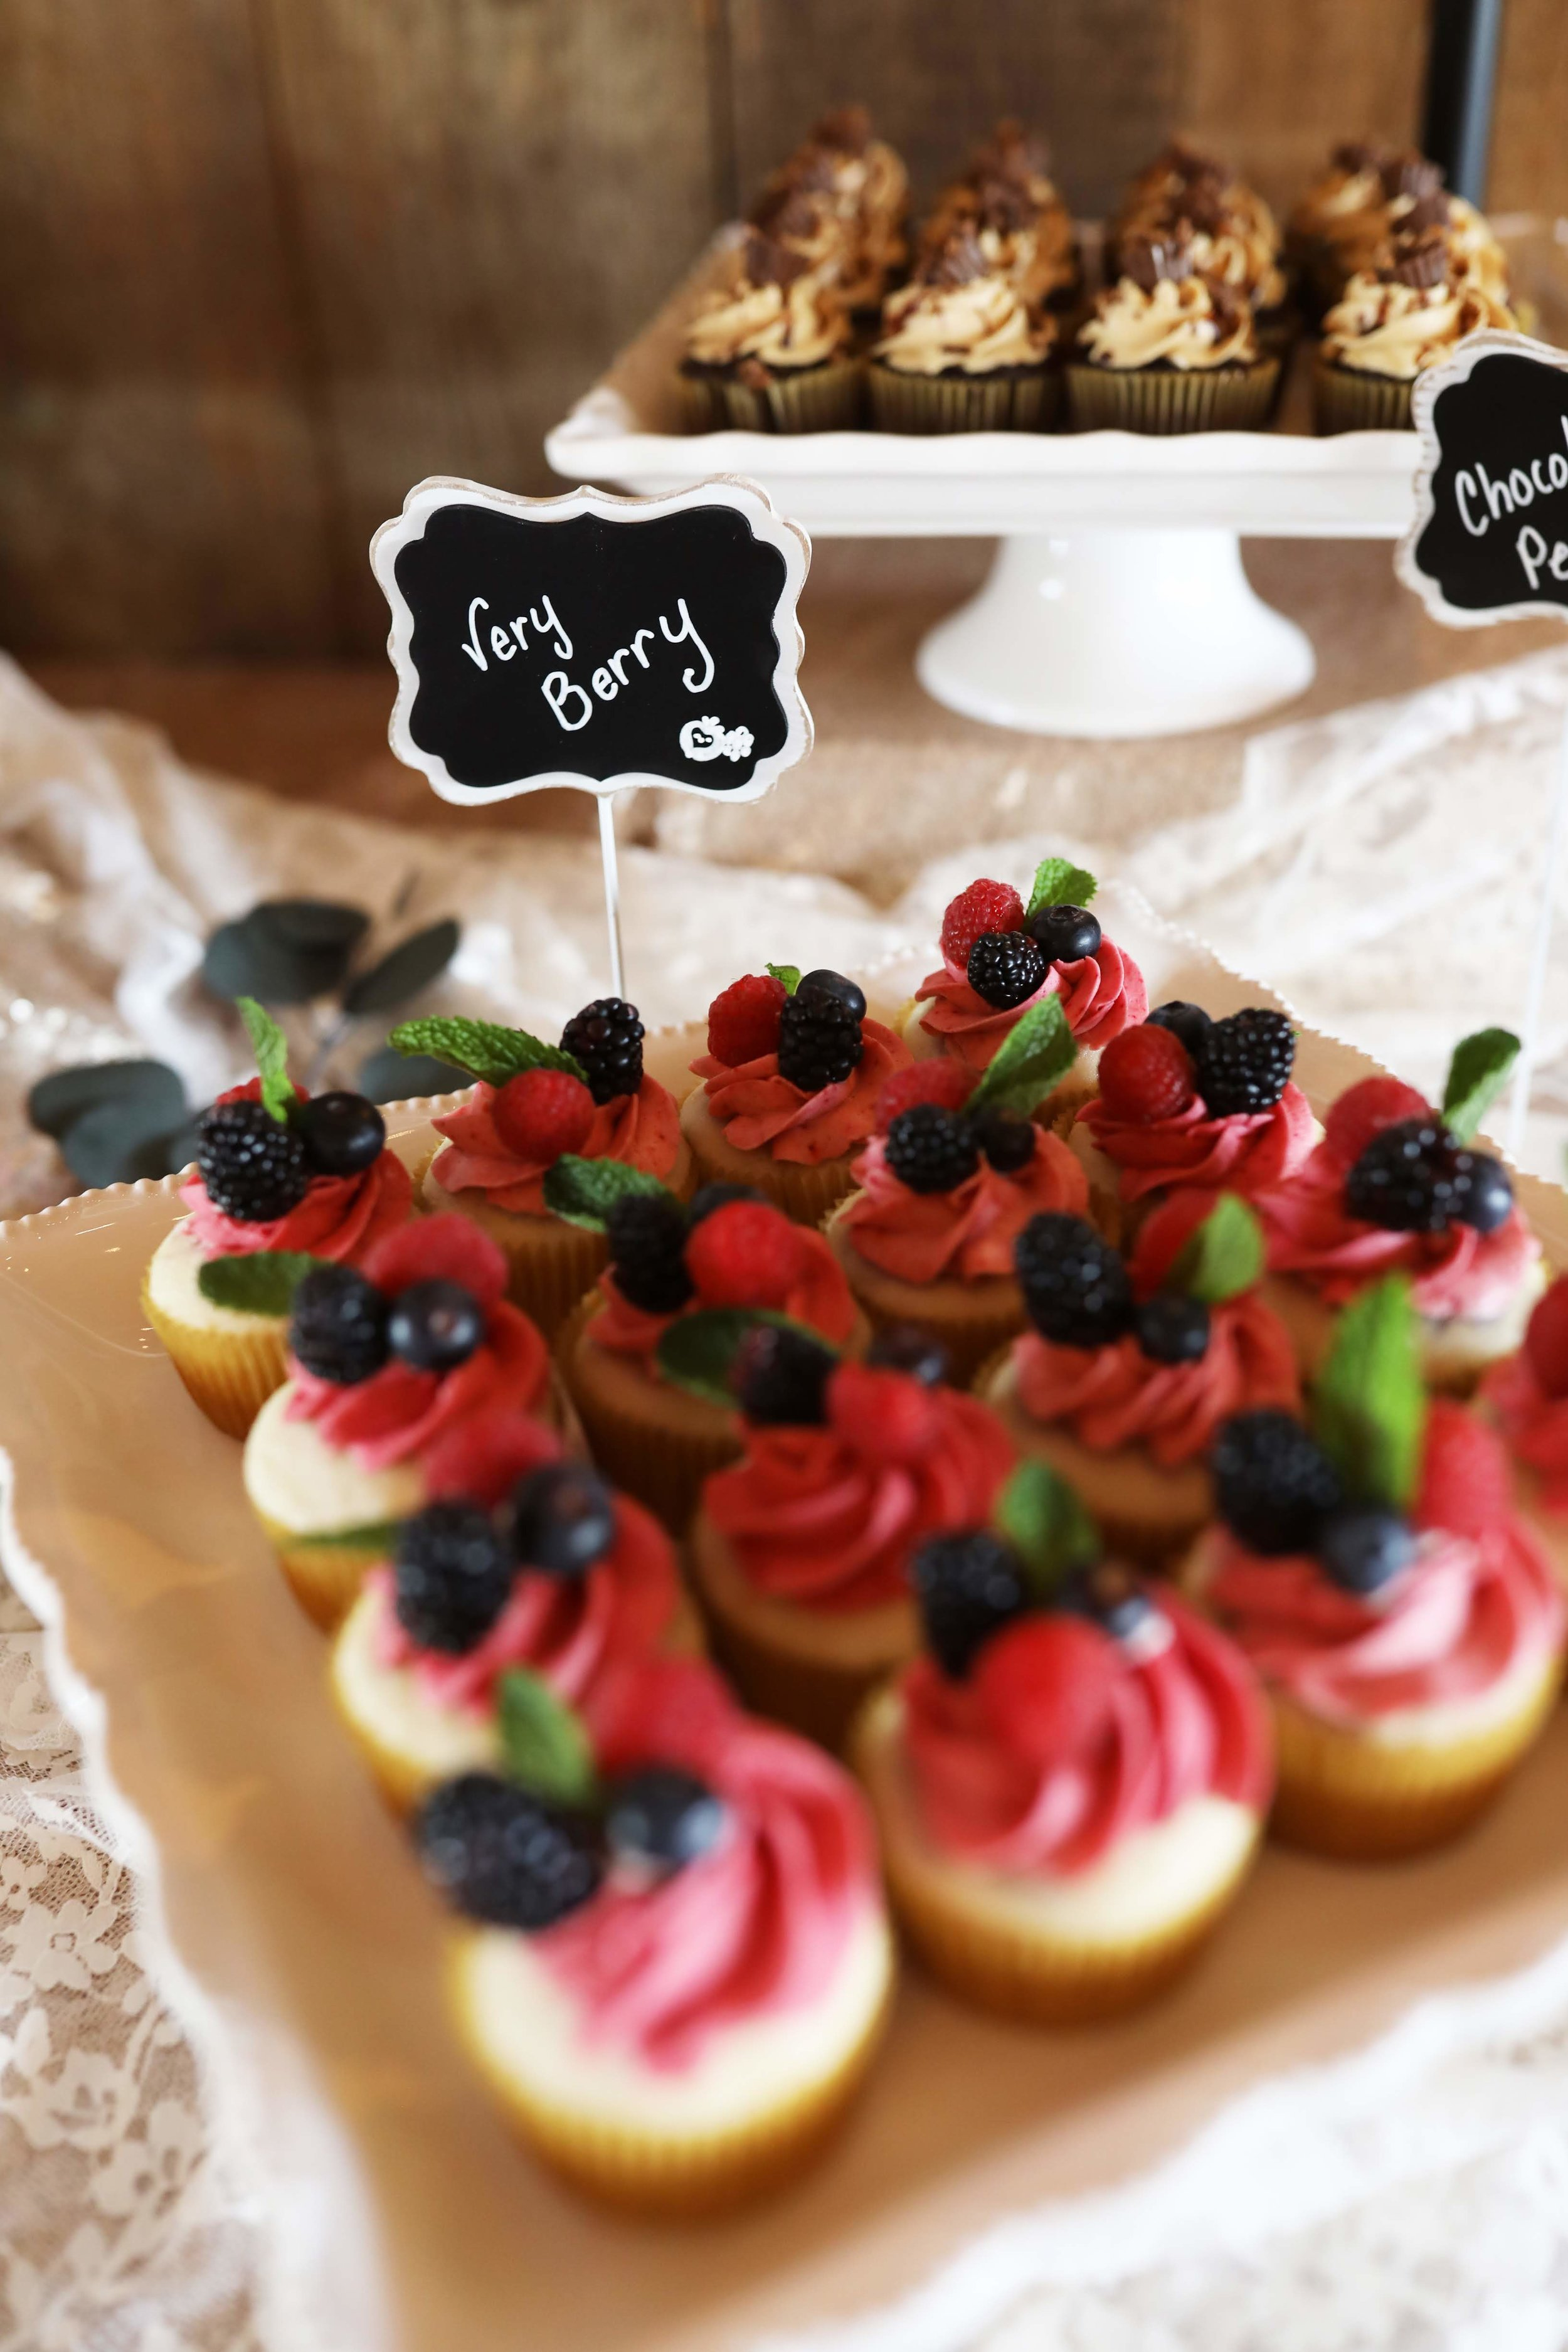 These cupcakes definitely tasted as good as they looked and were a crowd favorite!